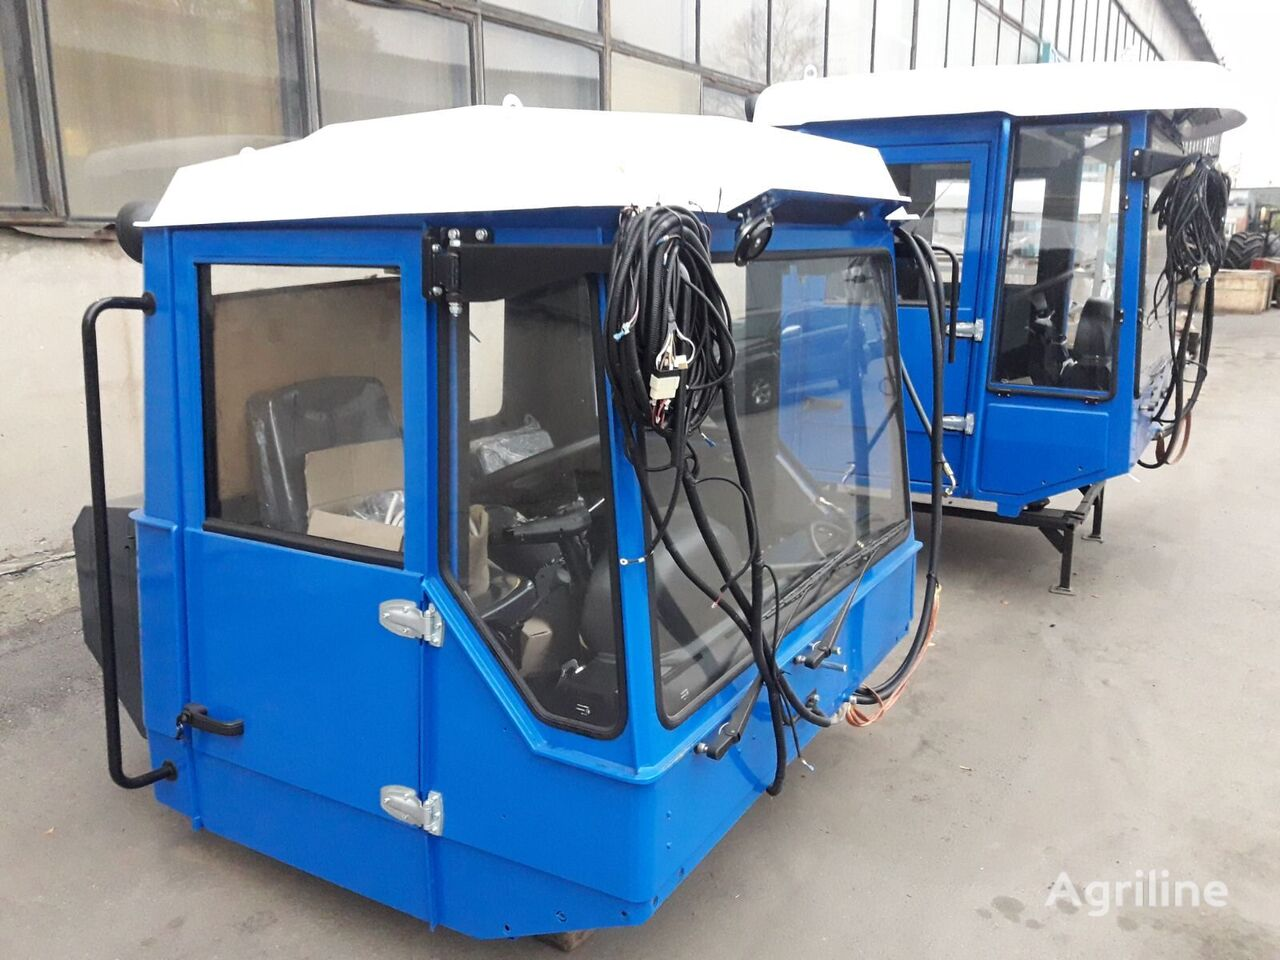 new cabin for HTZ tractor